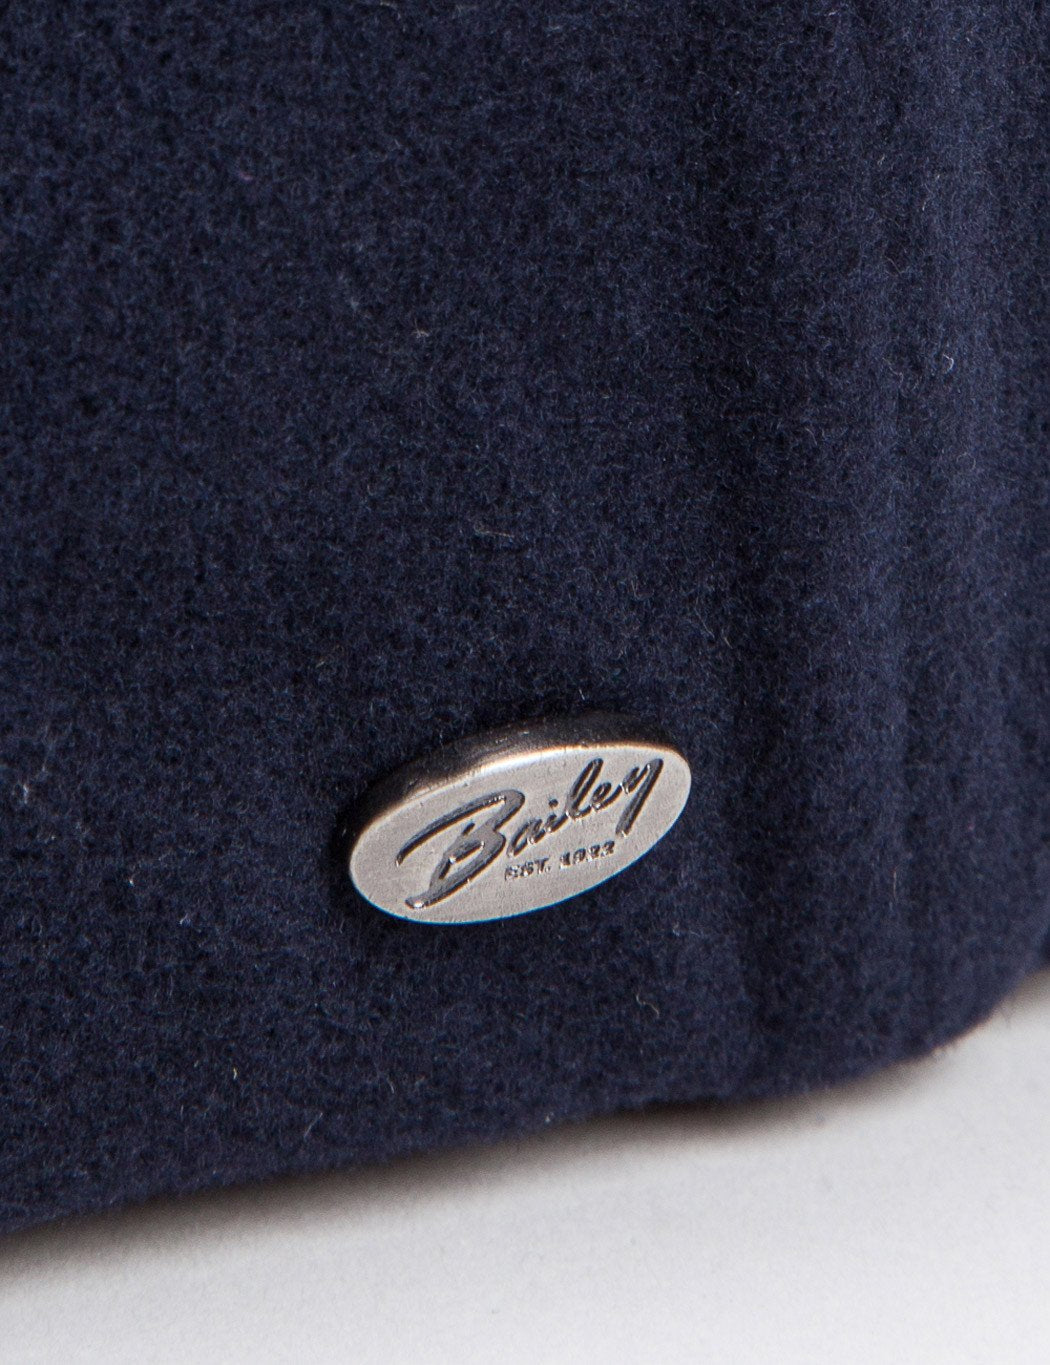 Bailey Galvin Wolle Newsboy Cap - Marineblau